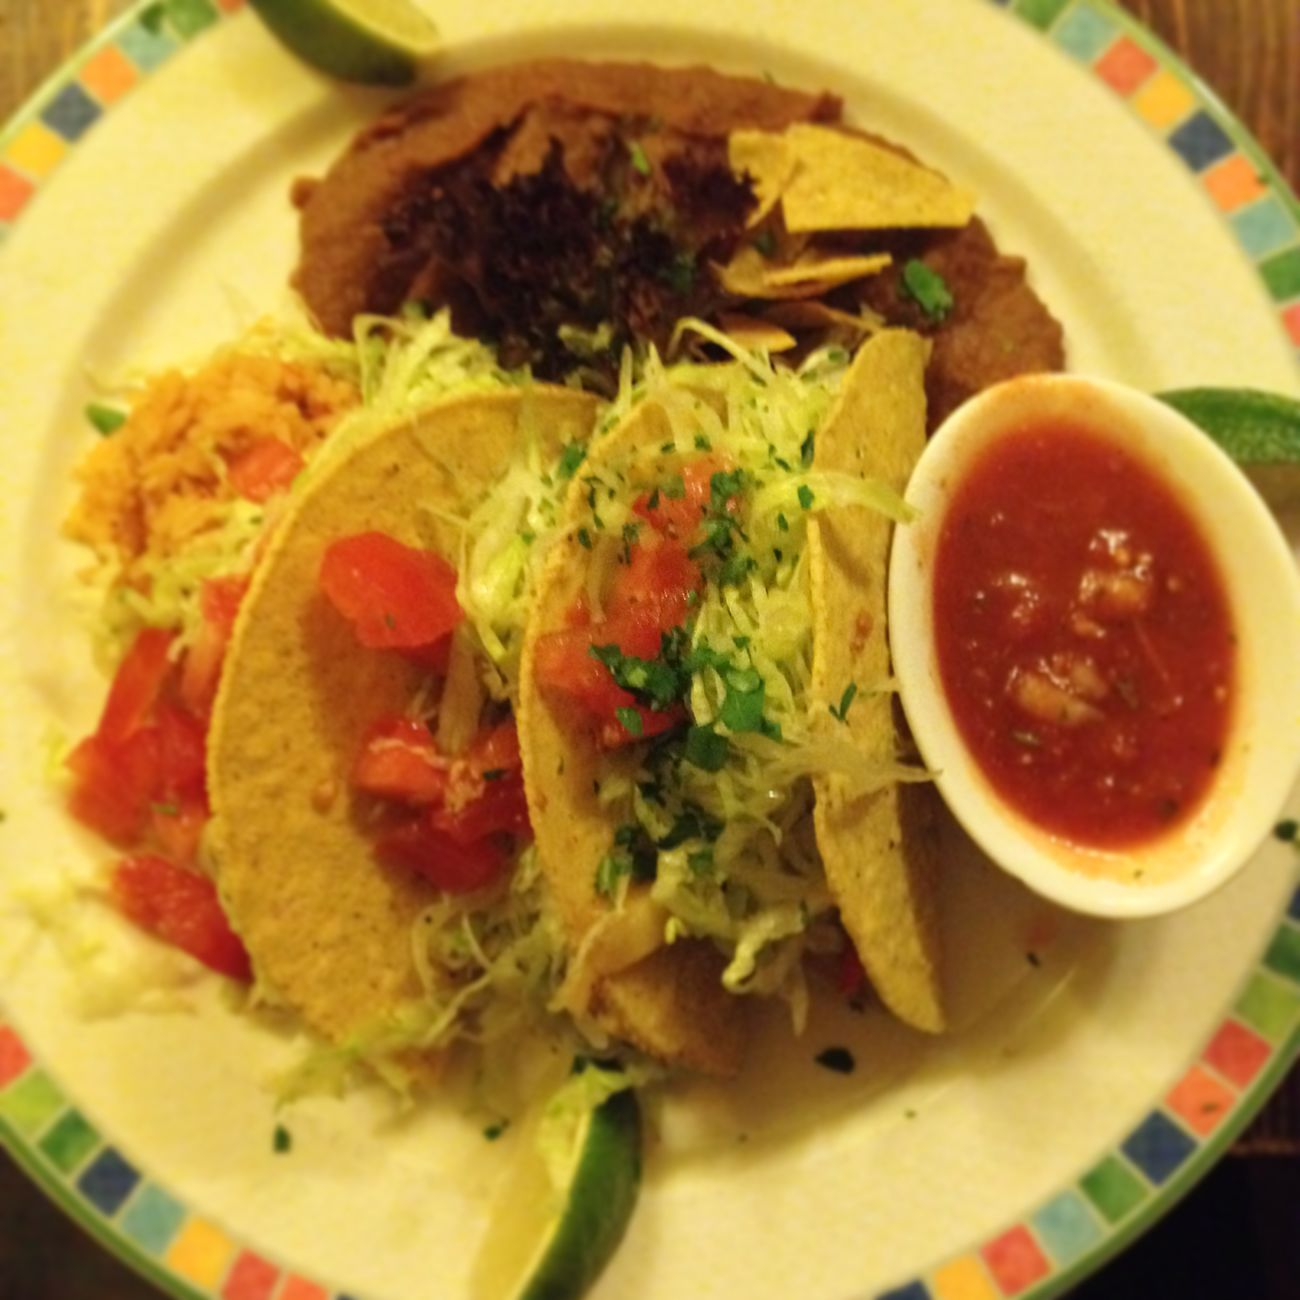 Vegan Dinner Taco Friends Birthday Salad Tomato Spicy